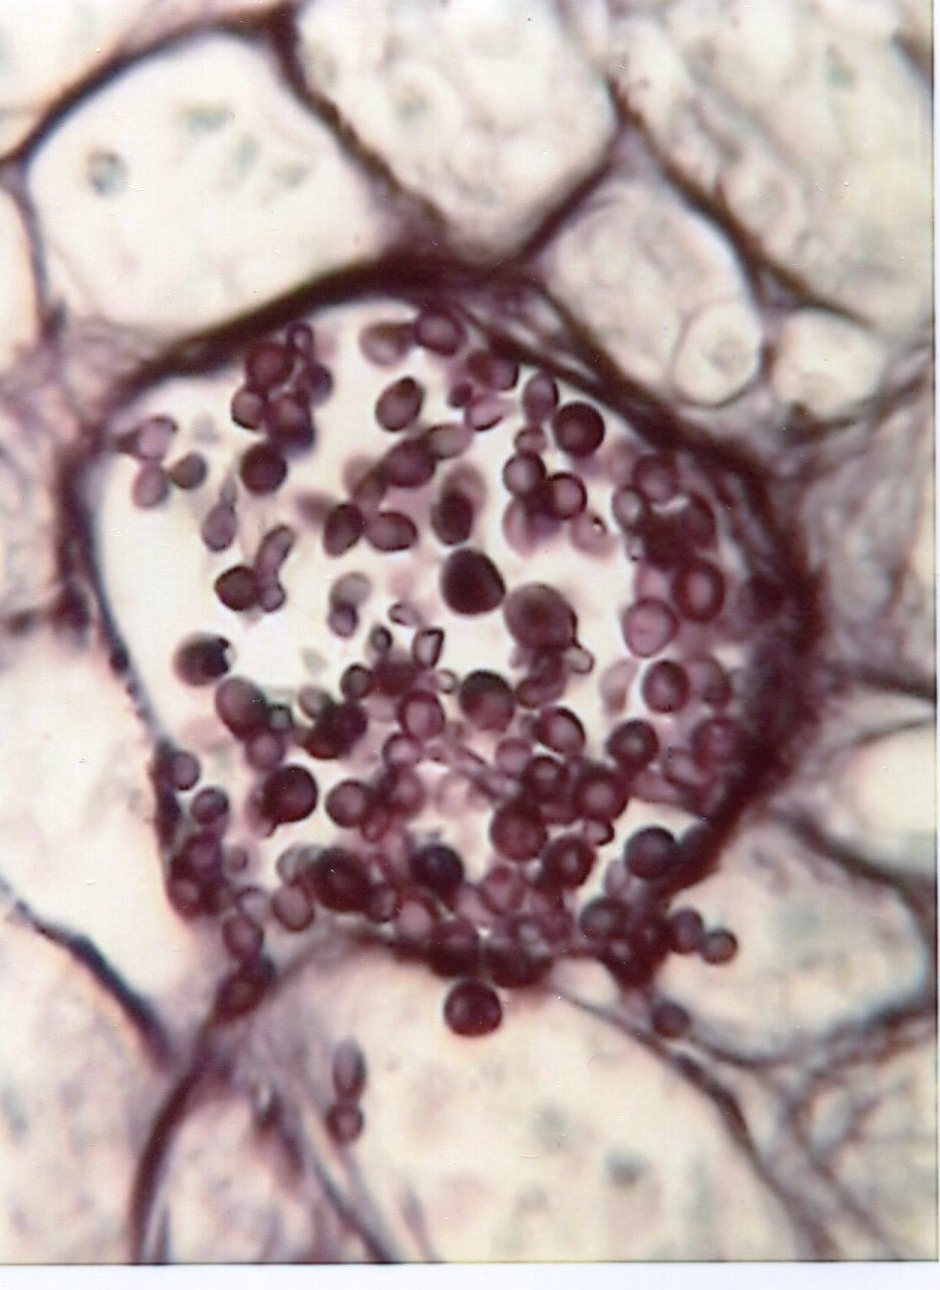 Candida in lungs : Parasitology Center